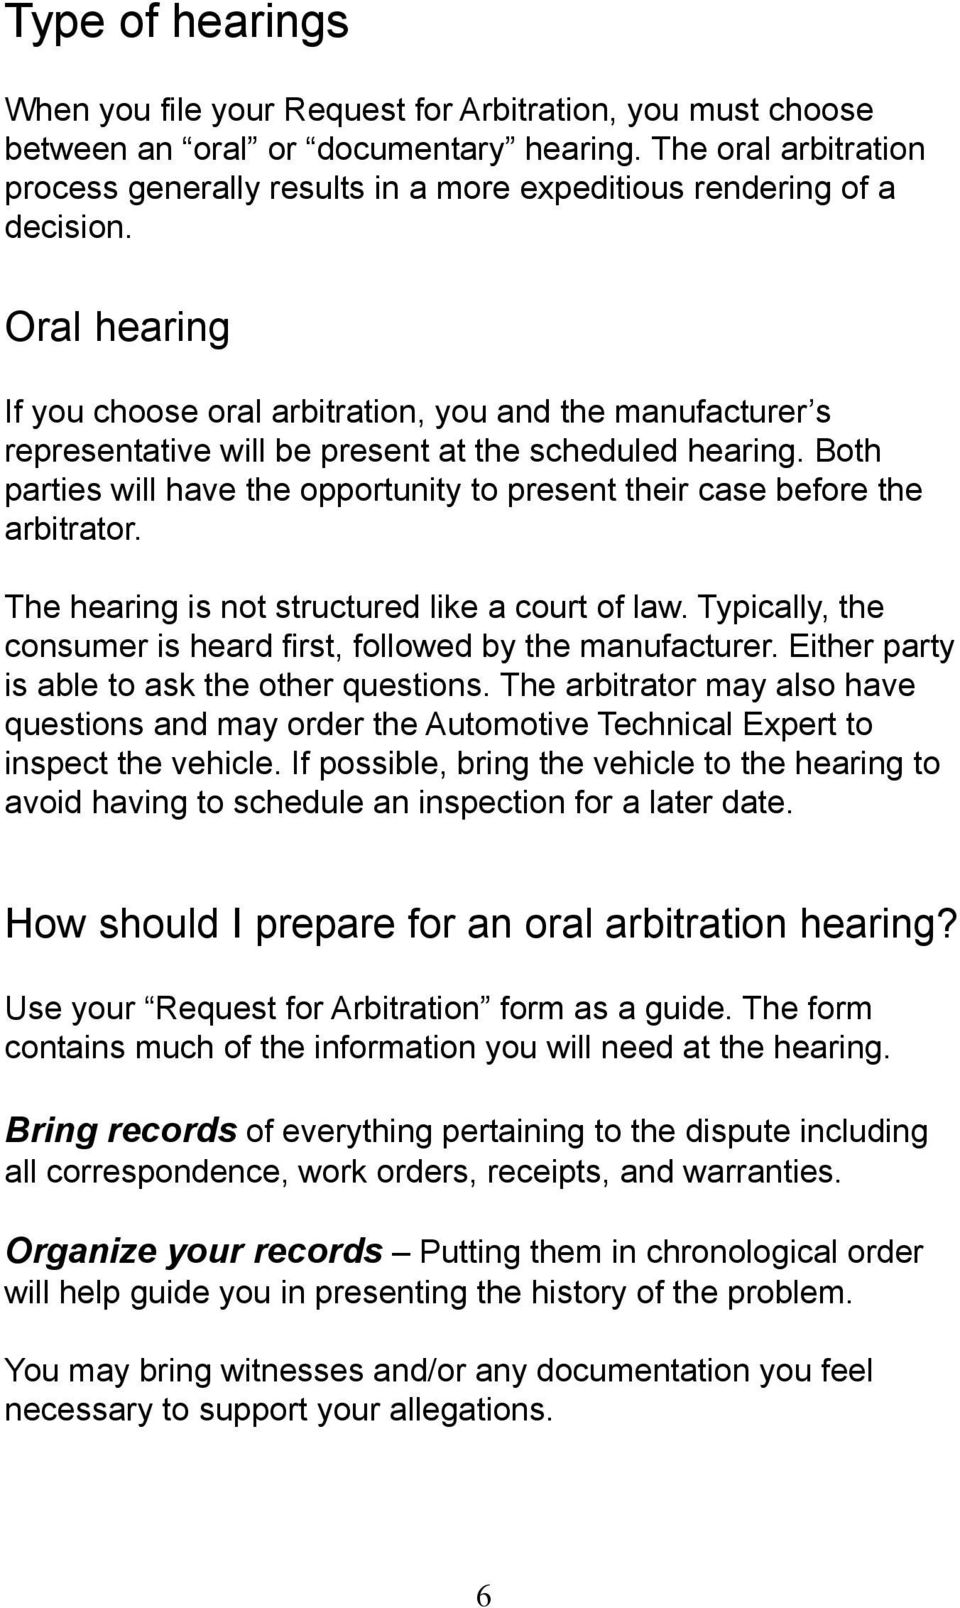 Oral hearing If you choose oral arbitration, you and the manufacturer s representative will be present at the scheduled hearing.